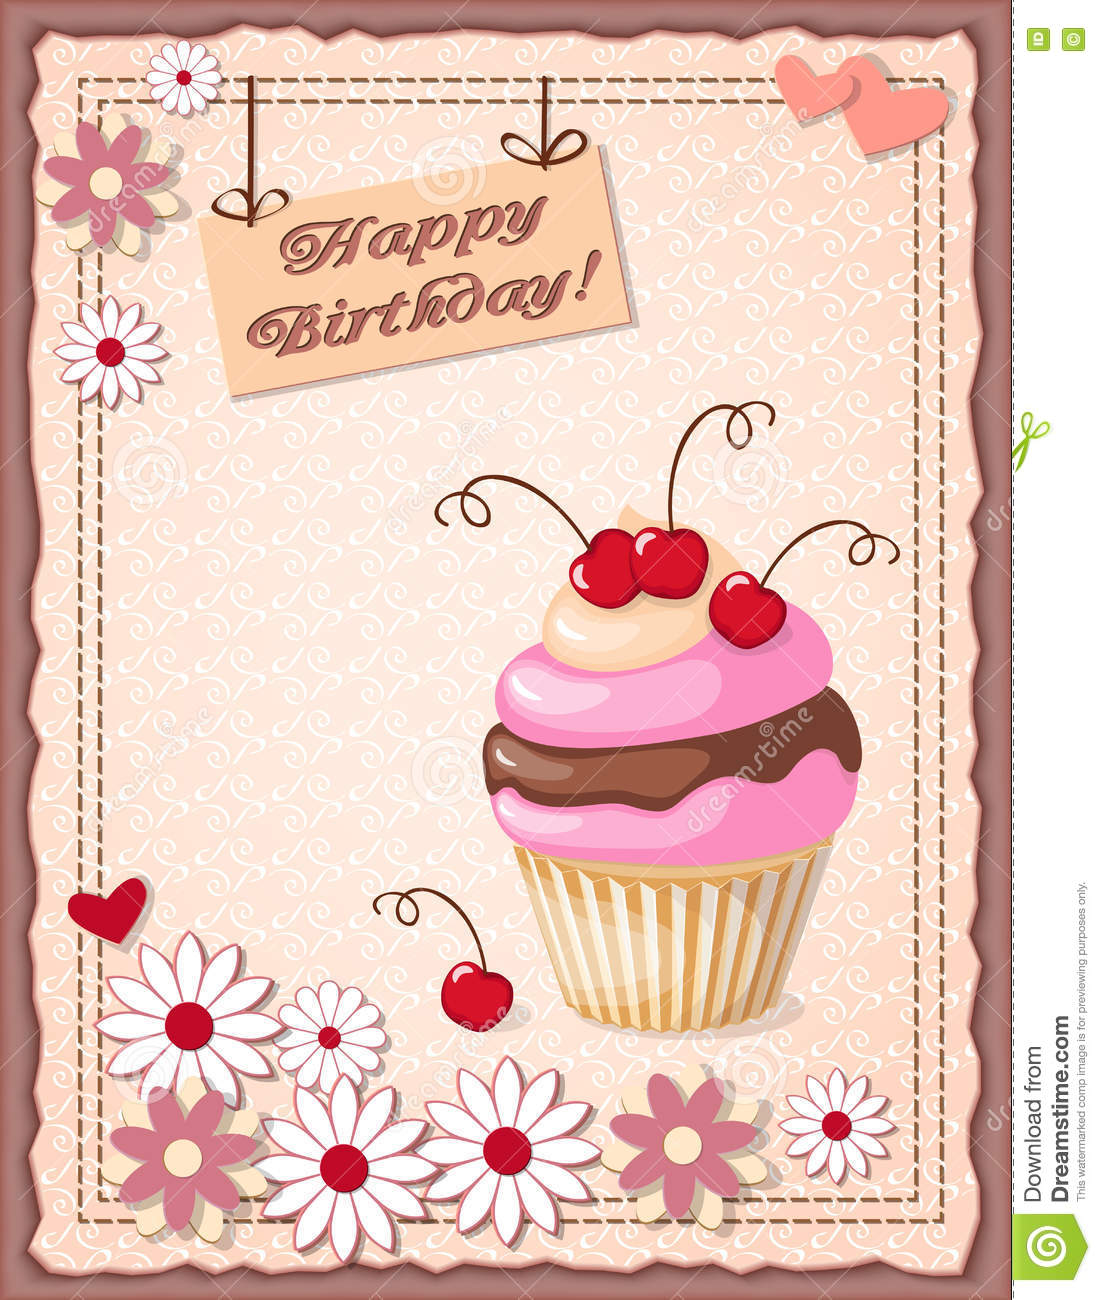 Birthday Card With Cake Cherry Hearts And Flowers Stock Vector